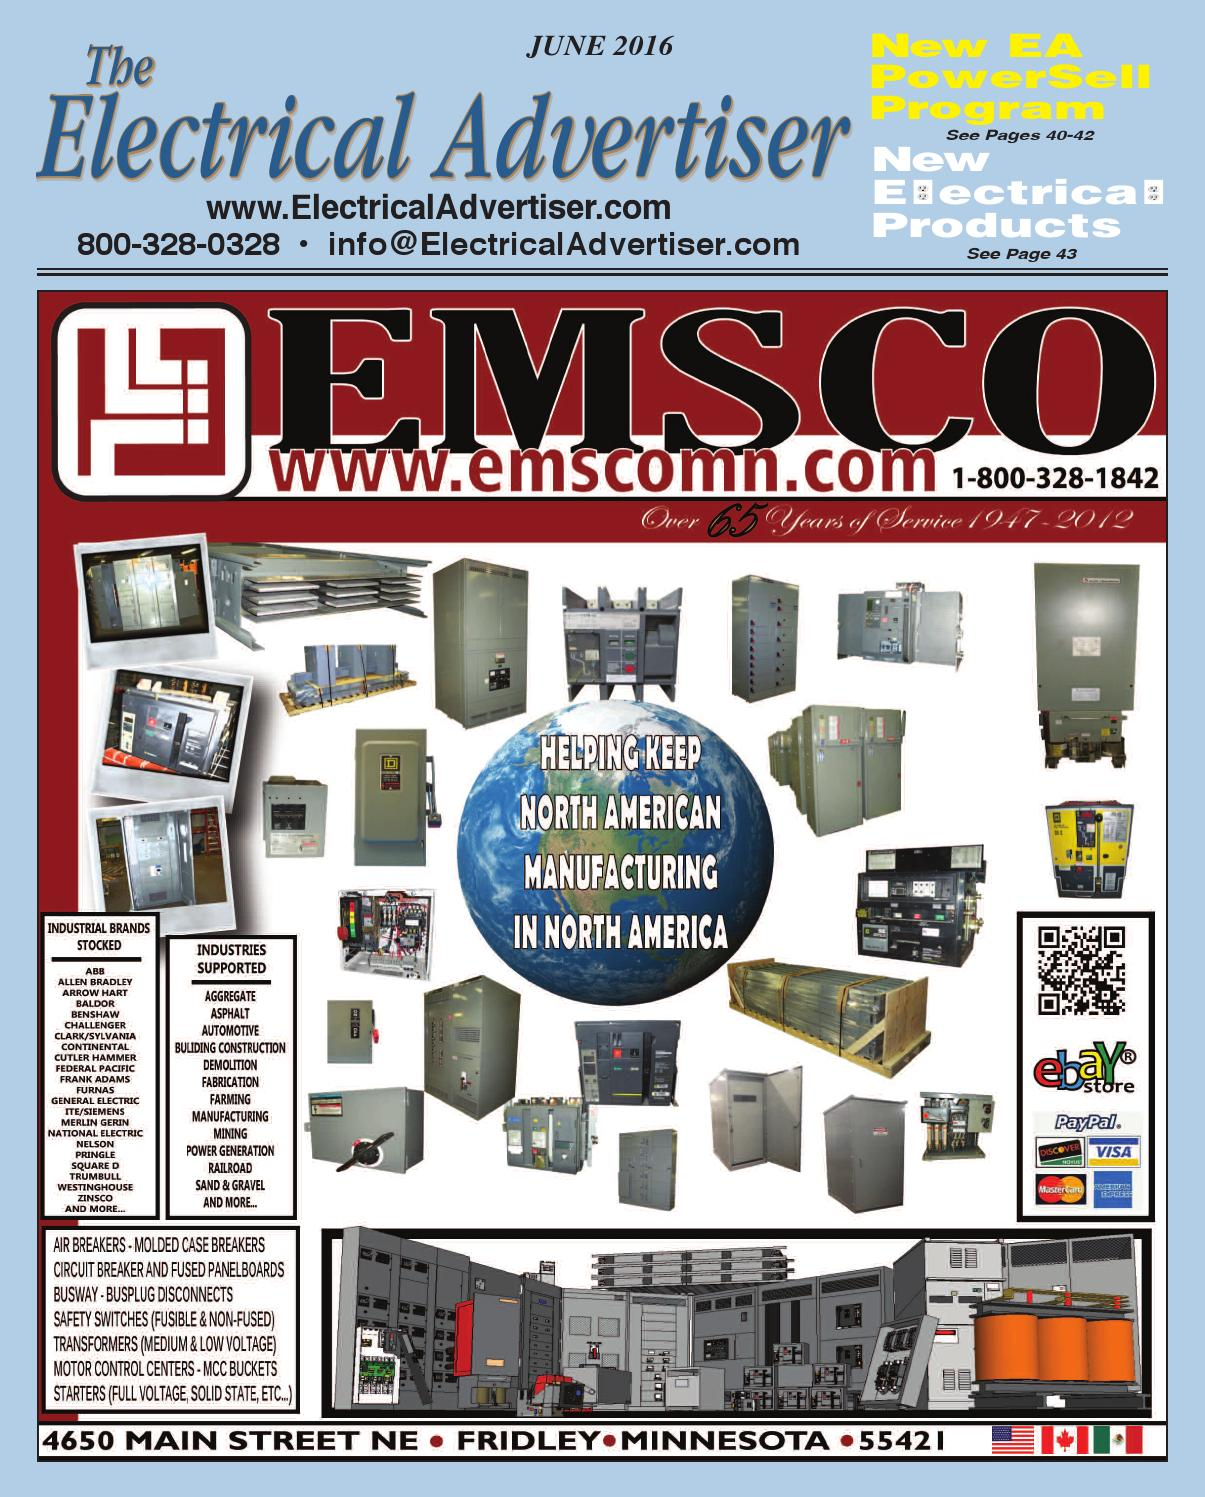 Electrical Advertiser June 2016 By Issuu Replacement Parts Lift Circuit Breakers Time Delay Breaker